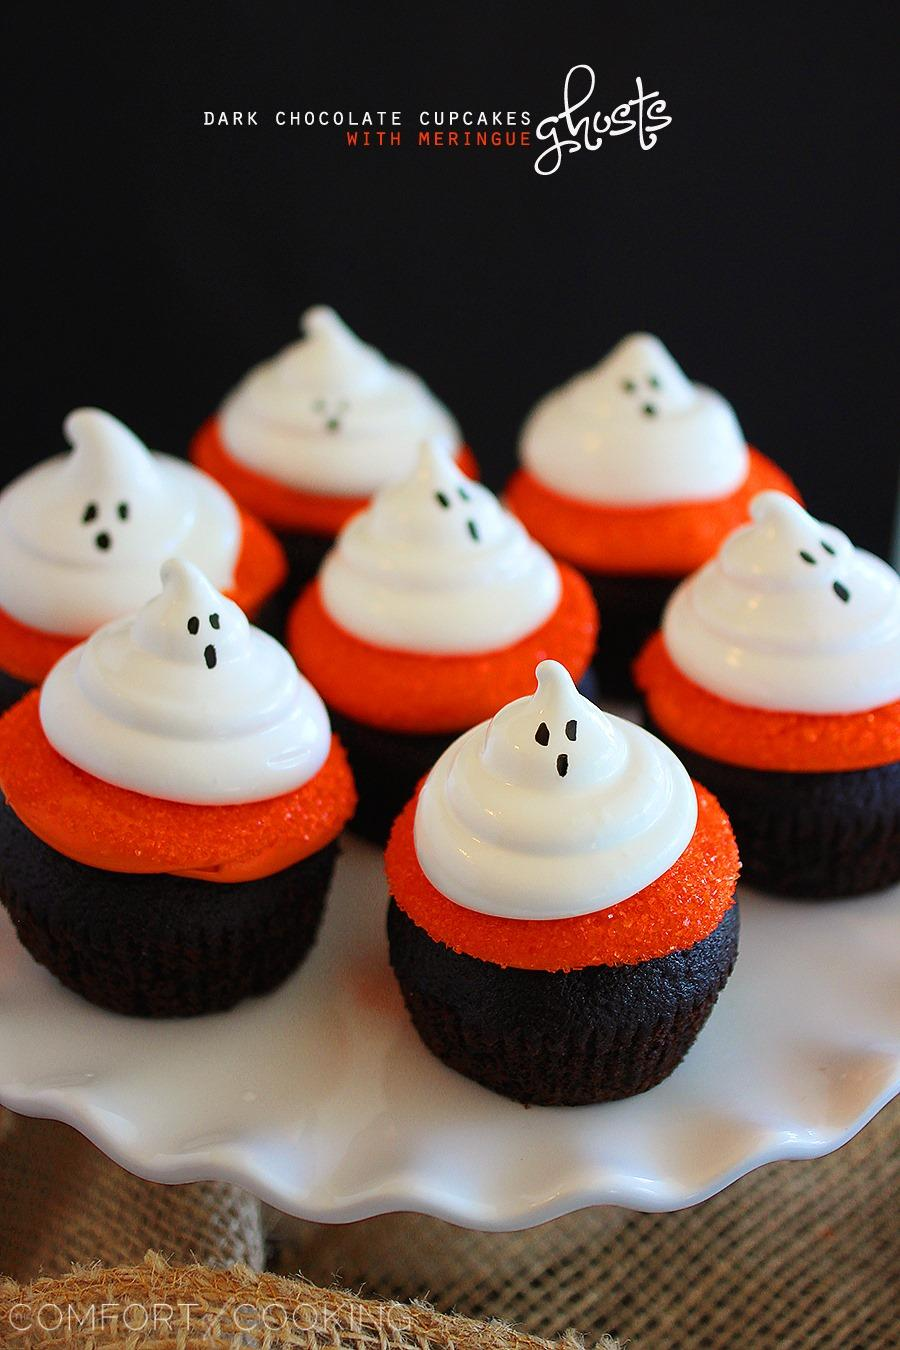 Dark Chocolate Cupcakes with Meringue Ghosts – Decadent dark chocolate cupcakes with fluffy meringue ghosts make for a scrumptious, spooky Halloween treat! | thecomfortofcooking.com